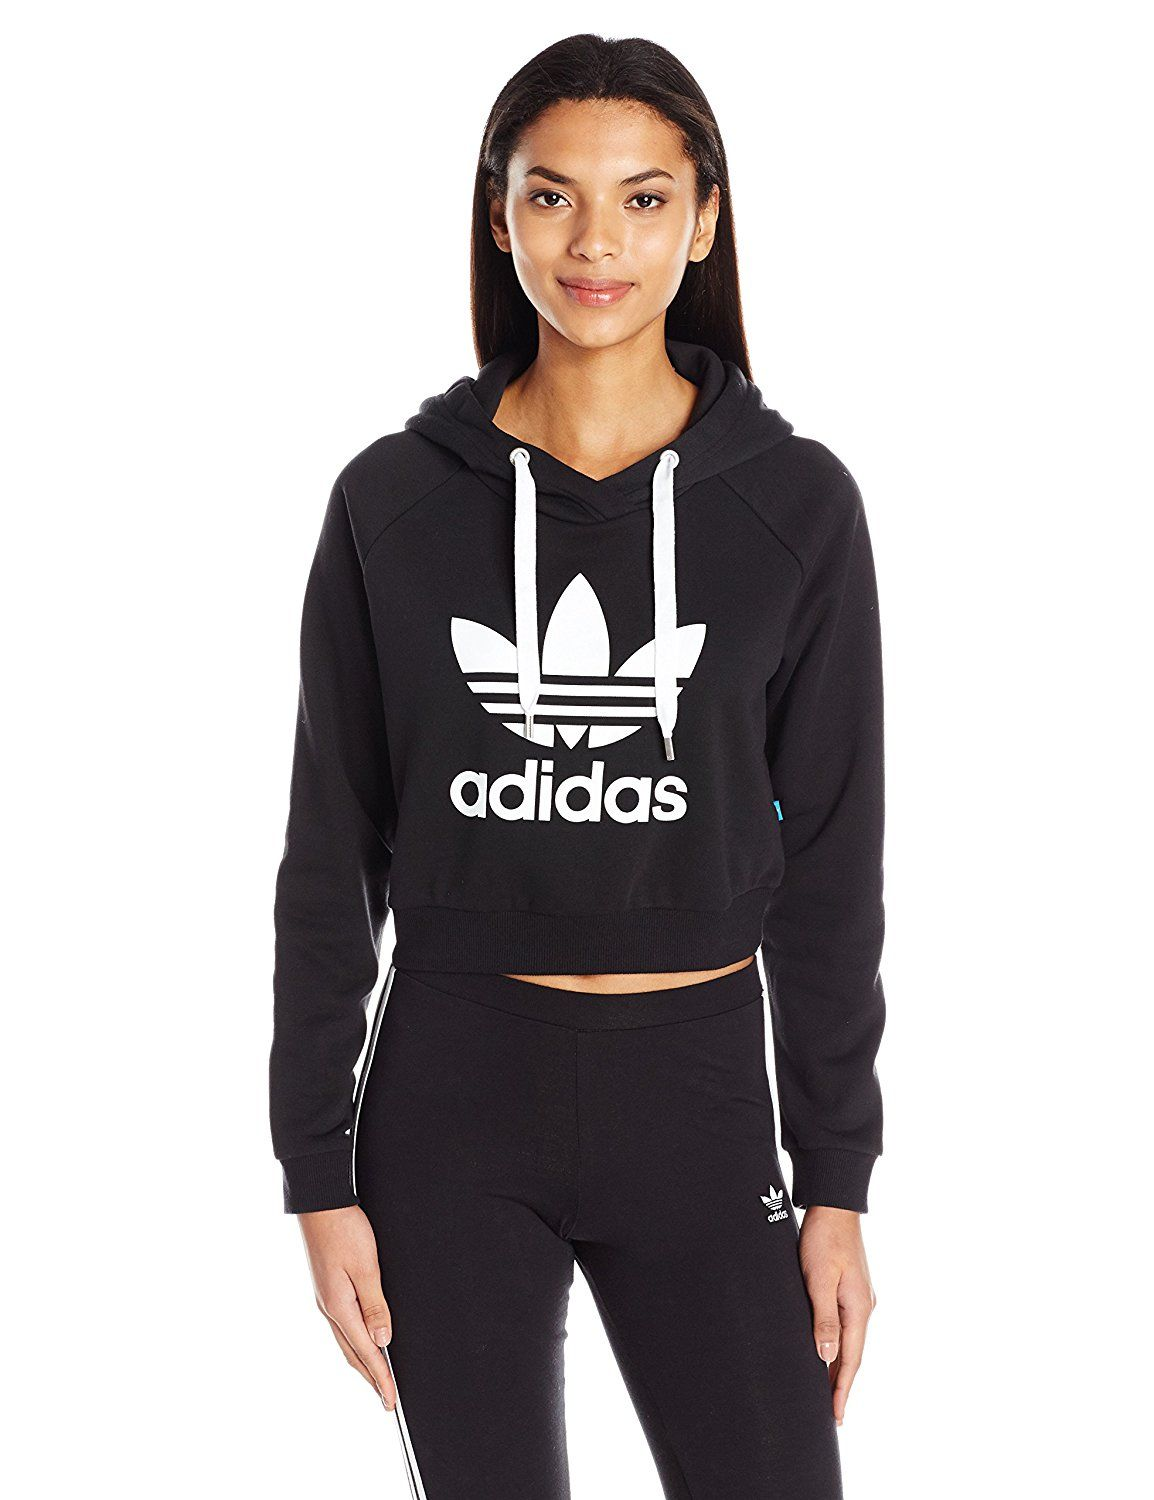 0c8e1f28be3bd adidas Originals Women s Crop Hoodie at Amazon Women s Clothing store